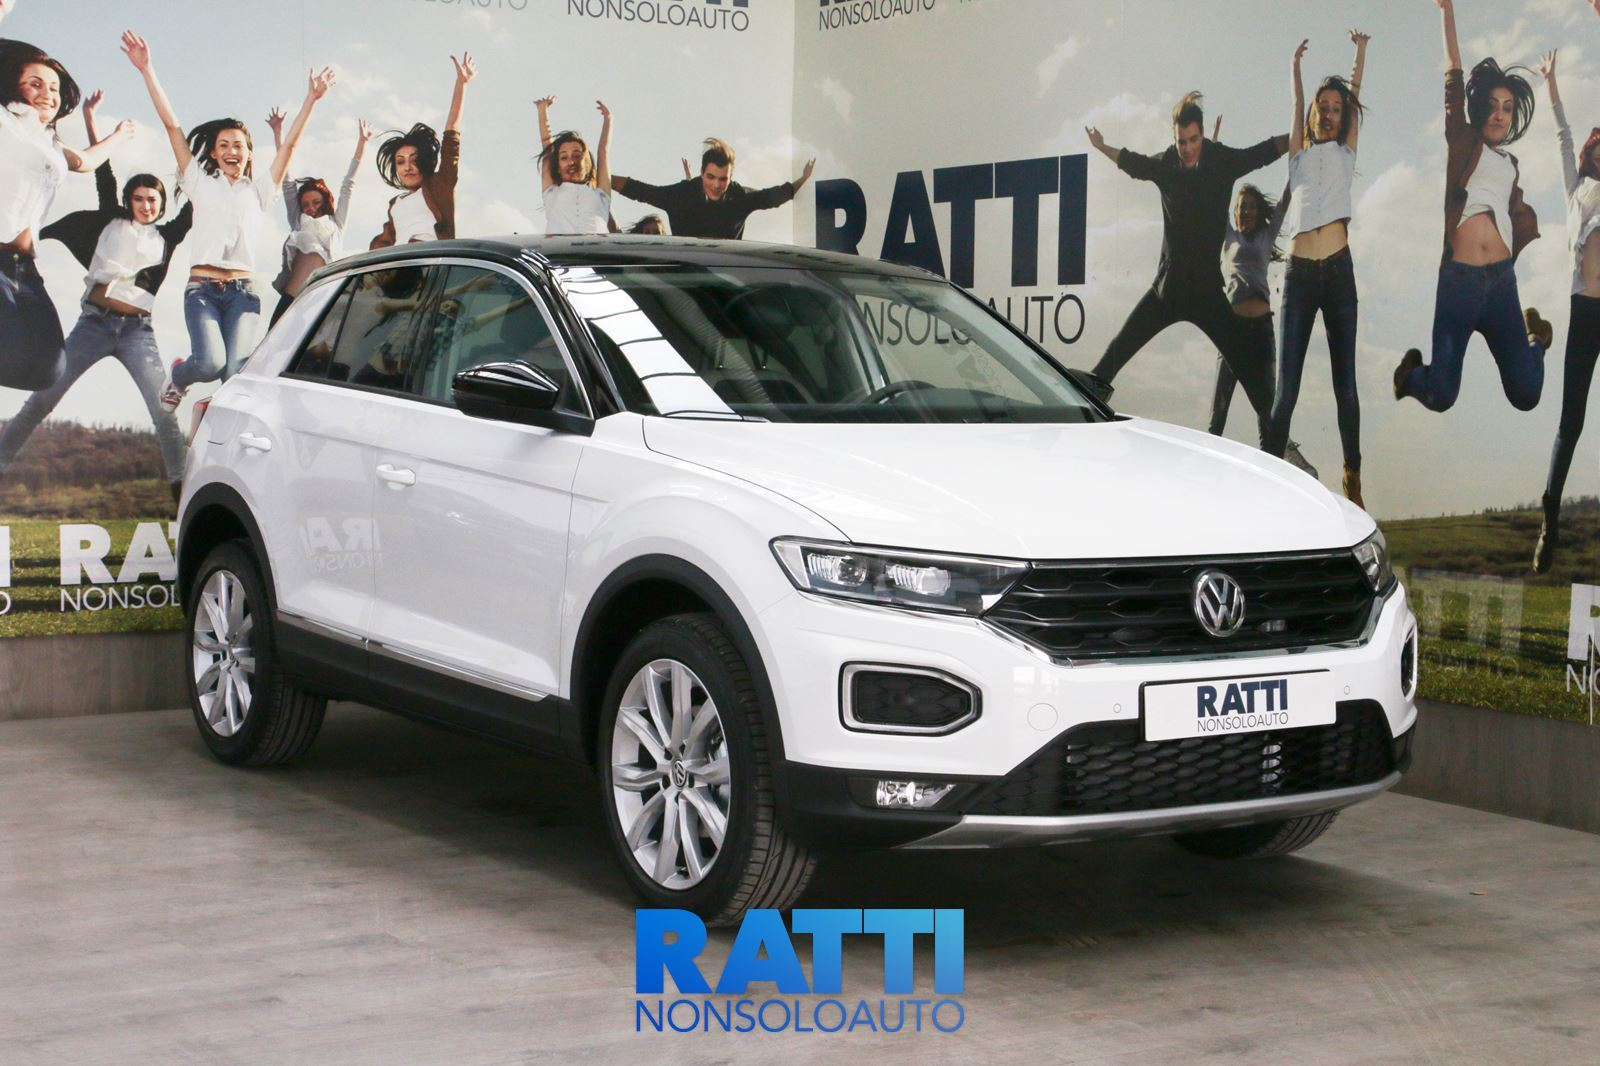 Volkswagen T-ROC 1.6 TDI  115CV ADVANCED + Executive Pack Bianco  cambio Manuale Diesel Nuovo 5 porte 5 posti EURO 6